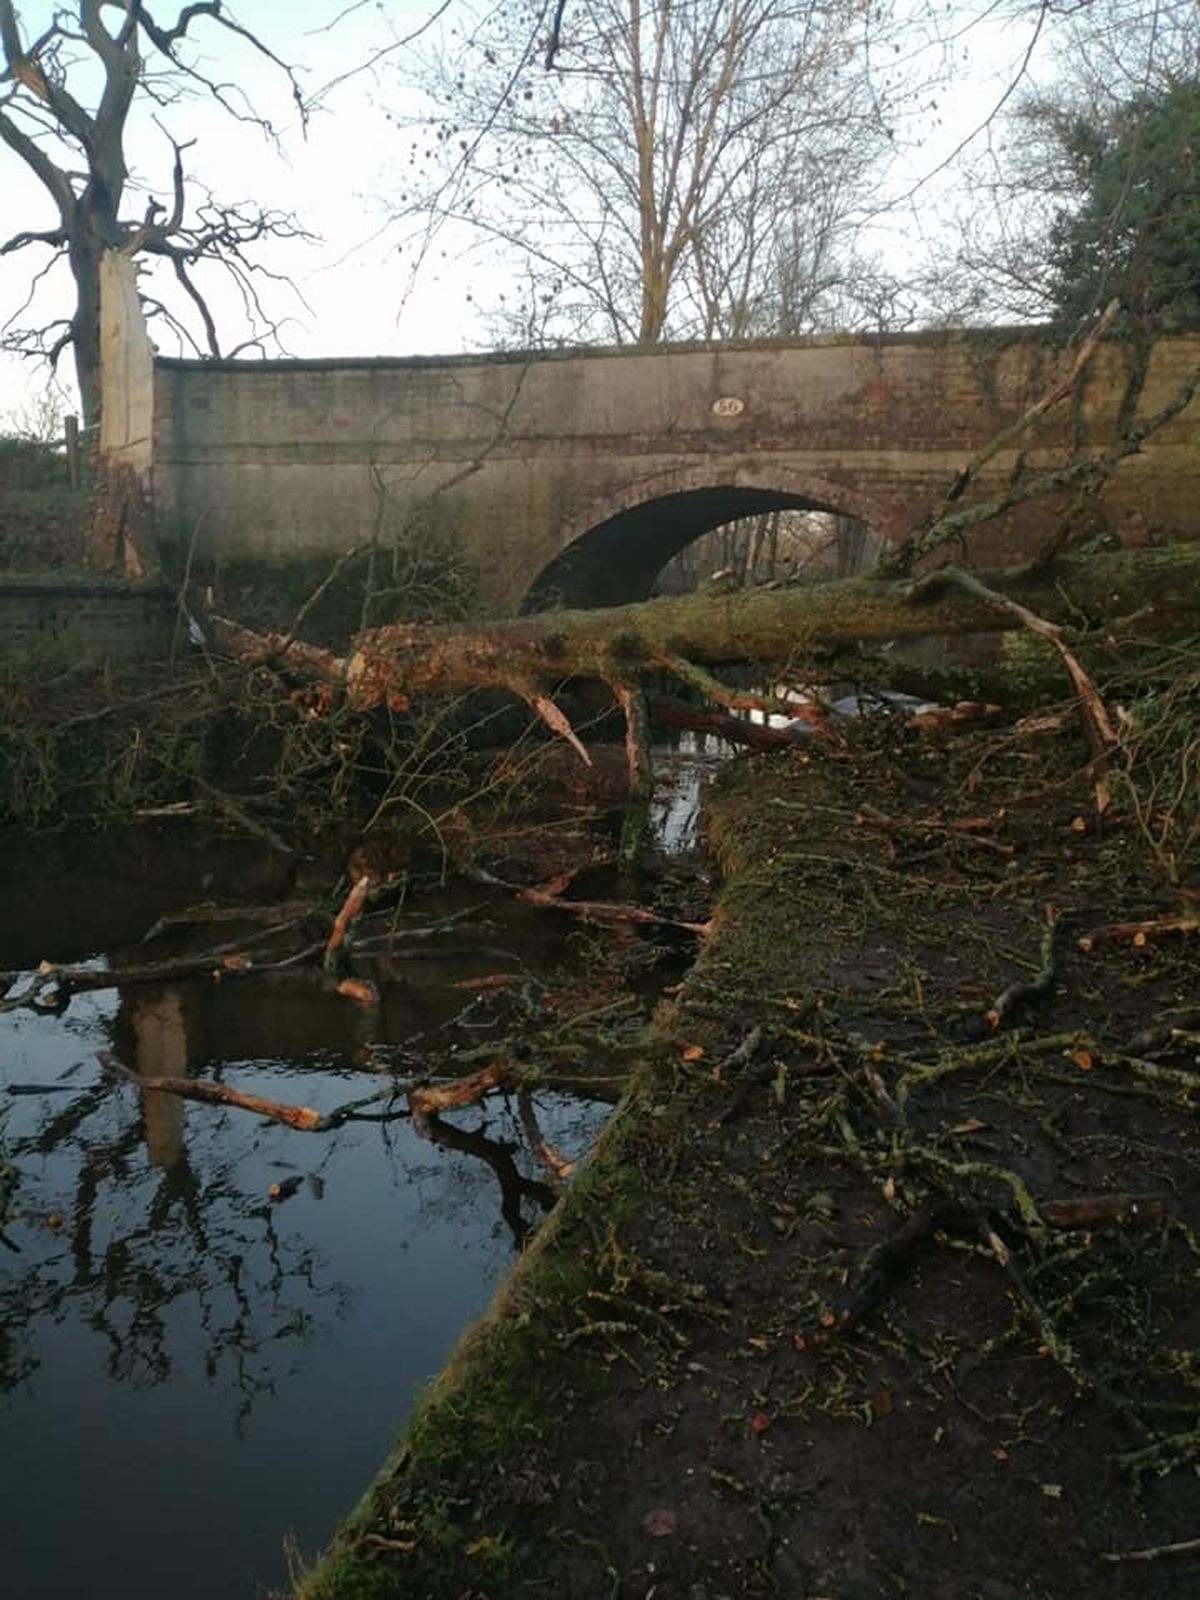 The tree that fell on the canal near Ellesmere. Photo: John Mooney